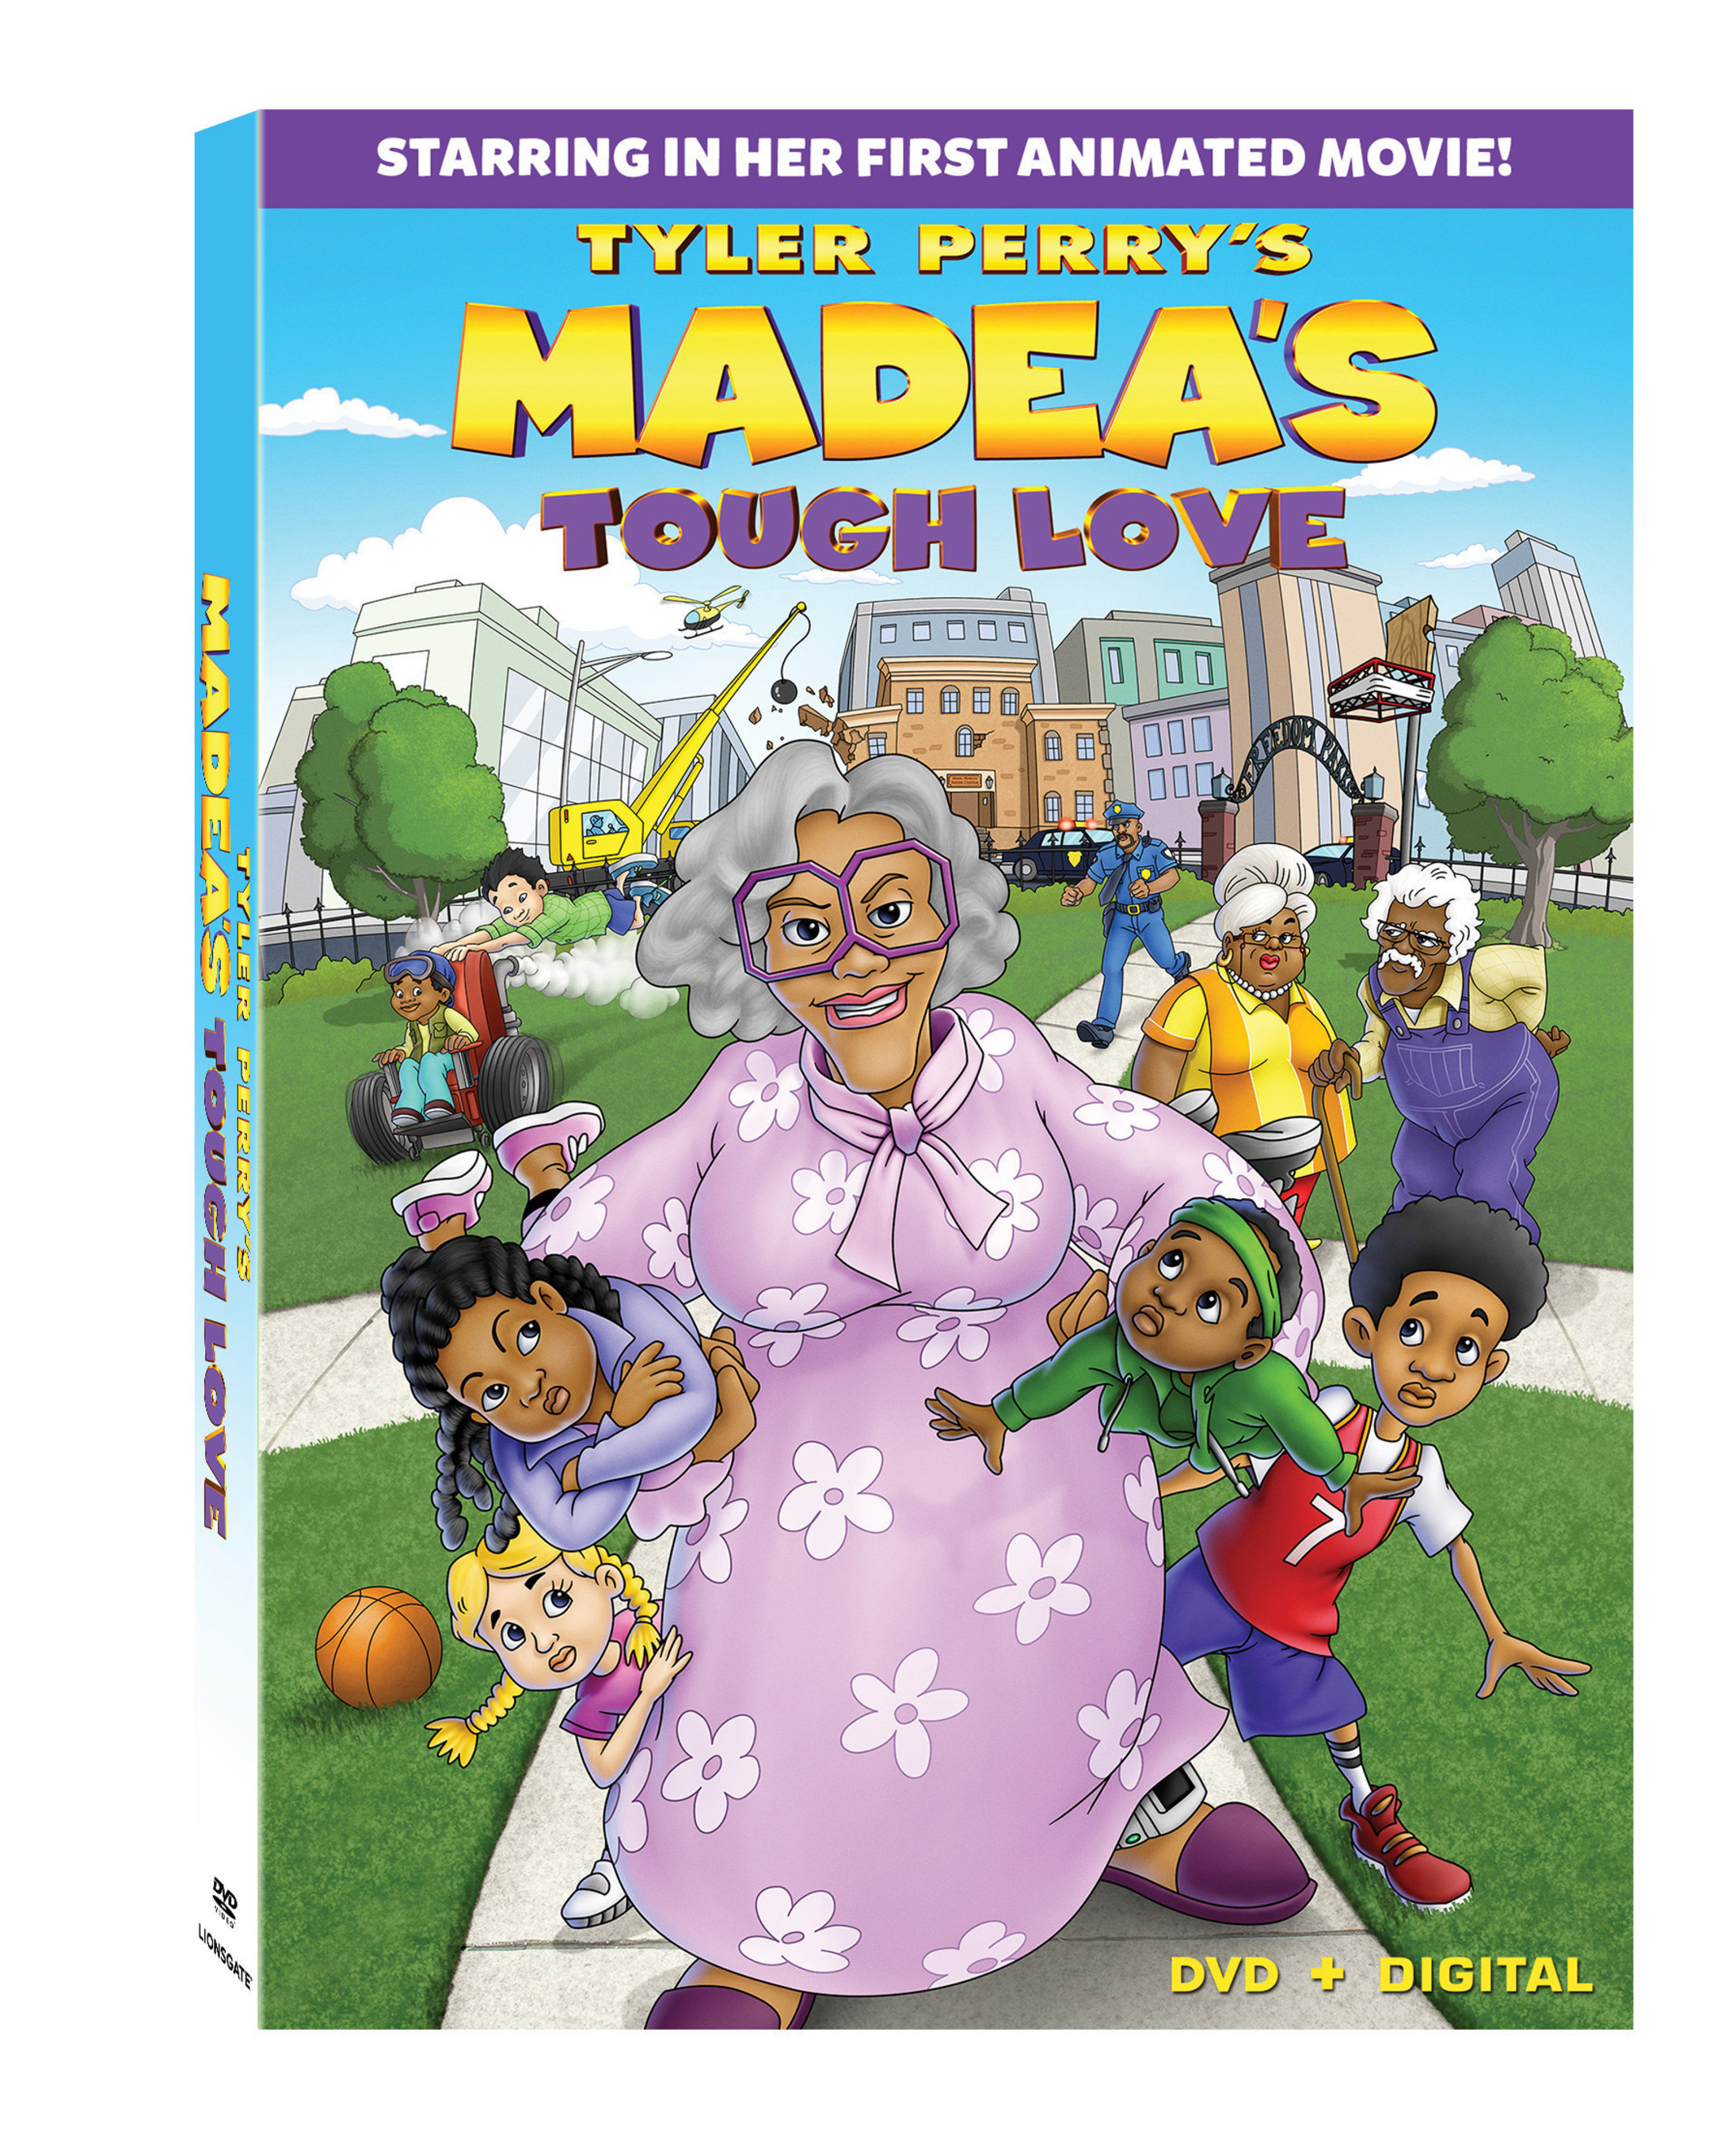 See Madea Like Never Before In Tyler Perry S First Animated Family Film Tyler Perry S Madea S Tough Love